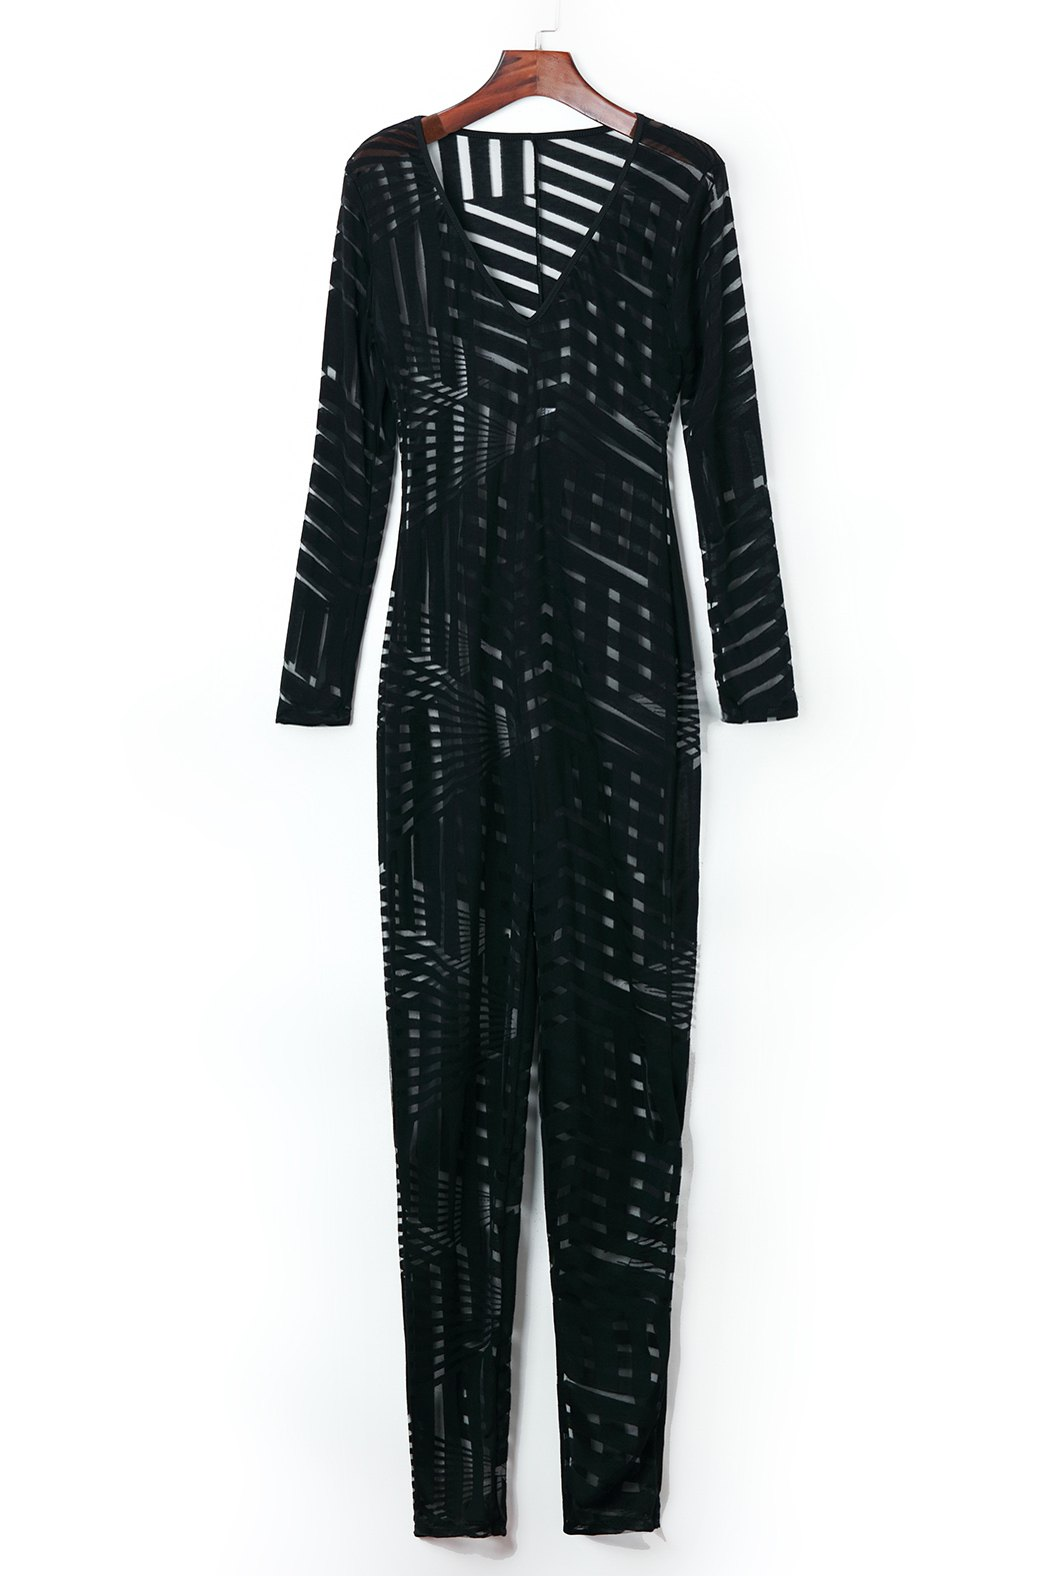 Sexy Plunging Neck Striped See-Through Long Sleeve Women's Jumpsuit sexy plunging neck half sleeve see through lace splicing black jumpsuit for women